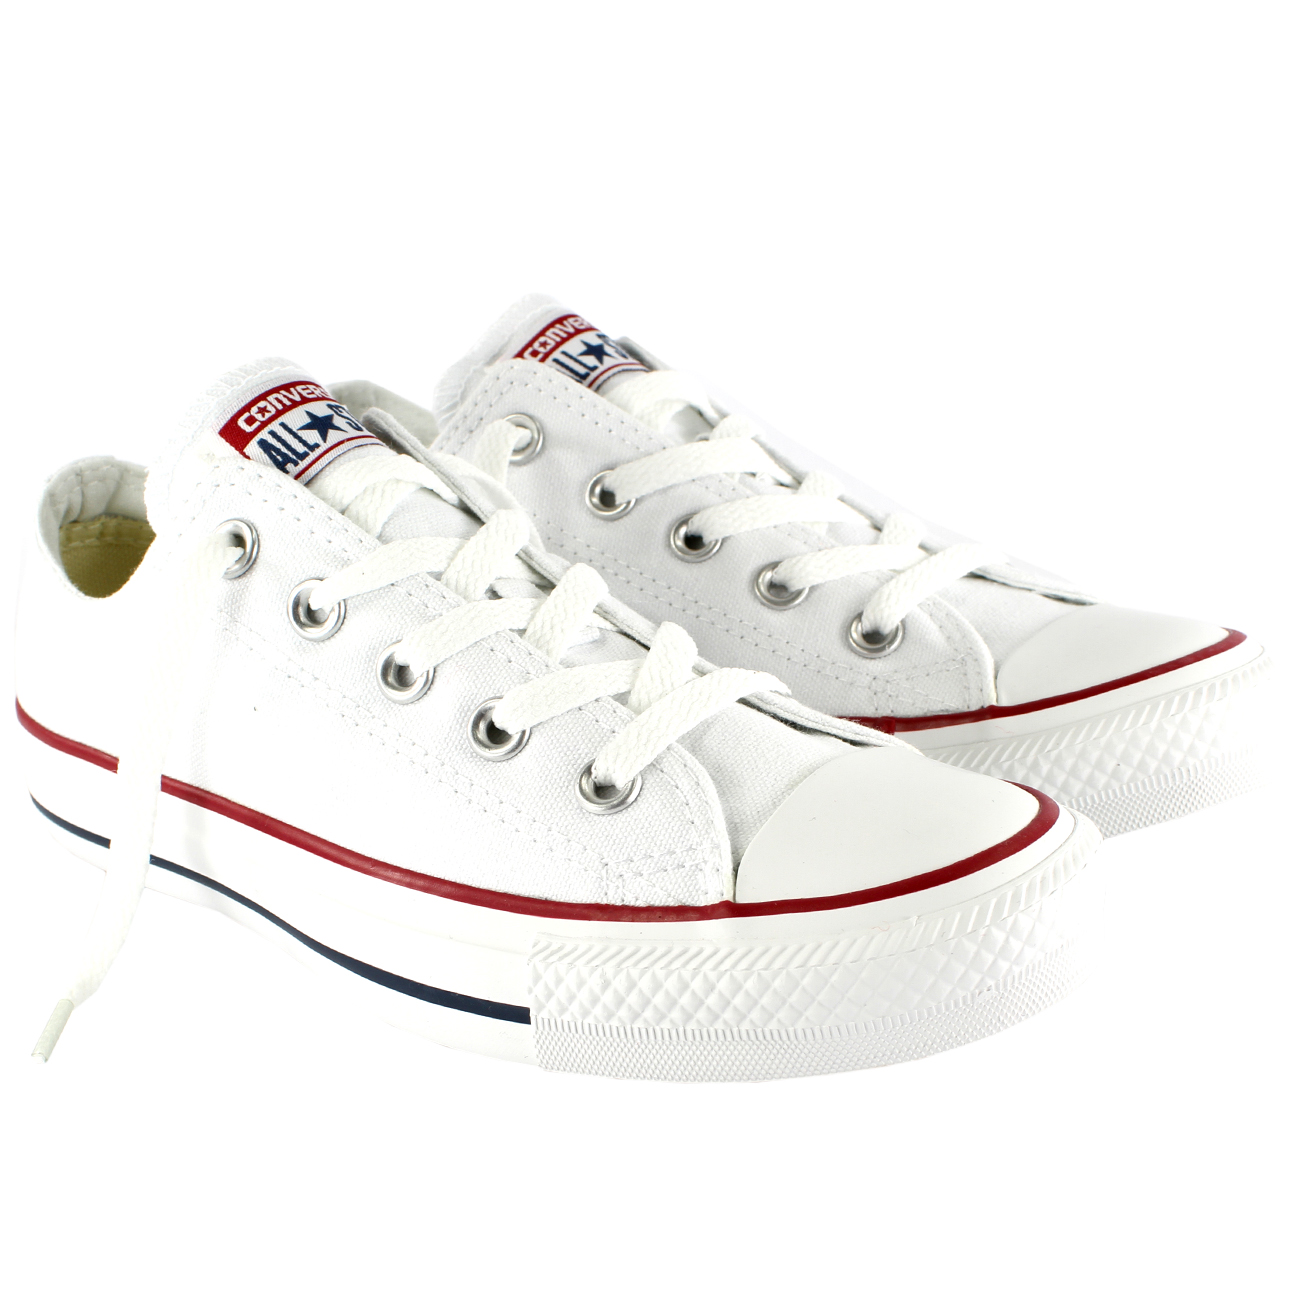 3aac842e229678 Details about Mens Converse All Star Ox Low Top Chuck Taylor Chucks Lace Up  Trainer Sizes 7-12